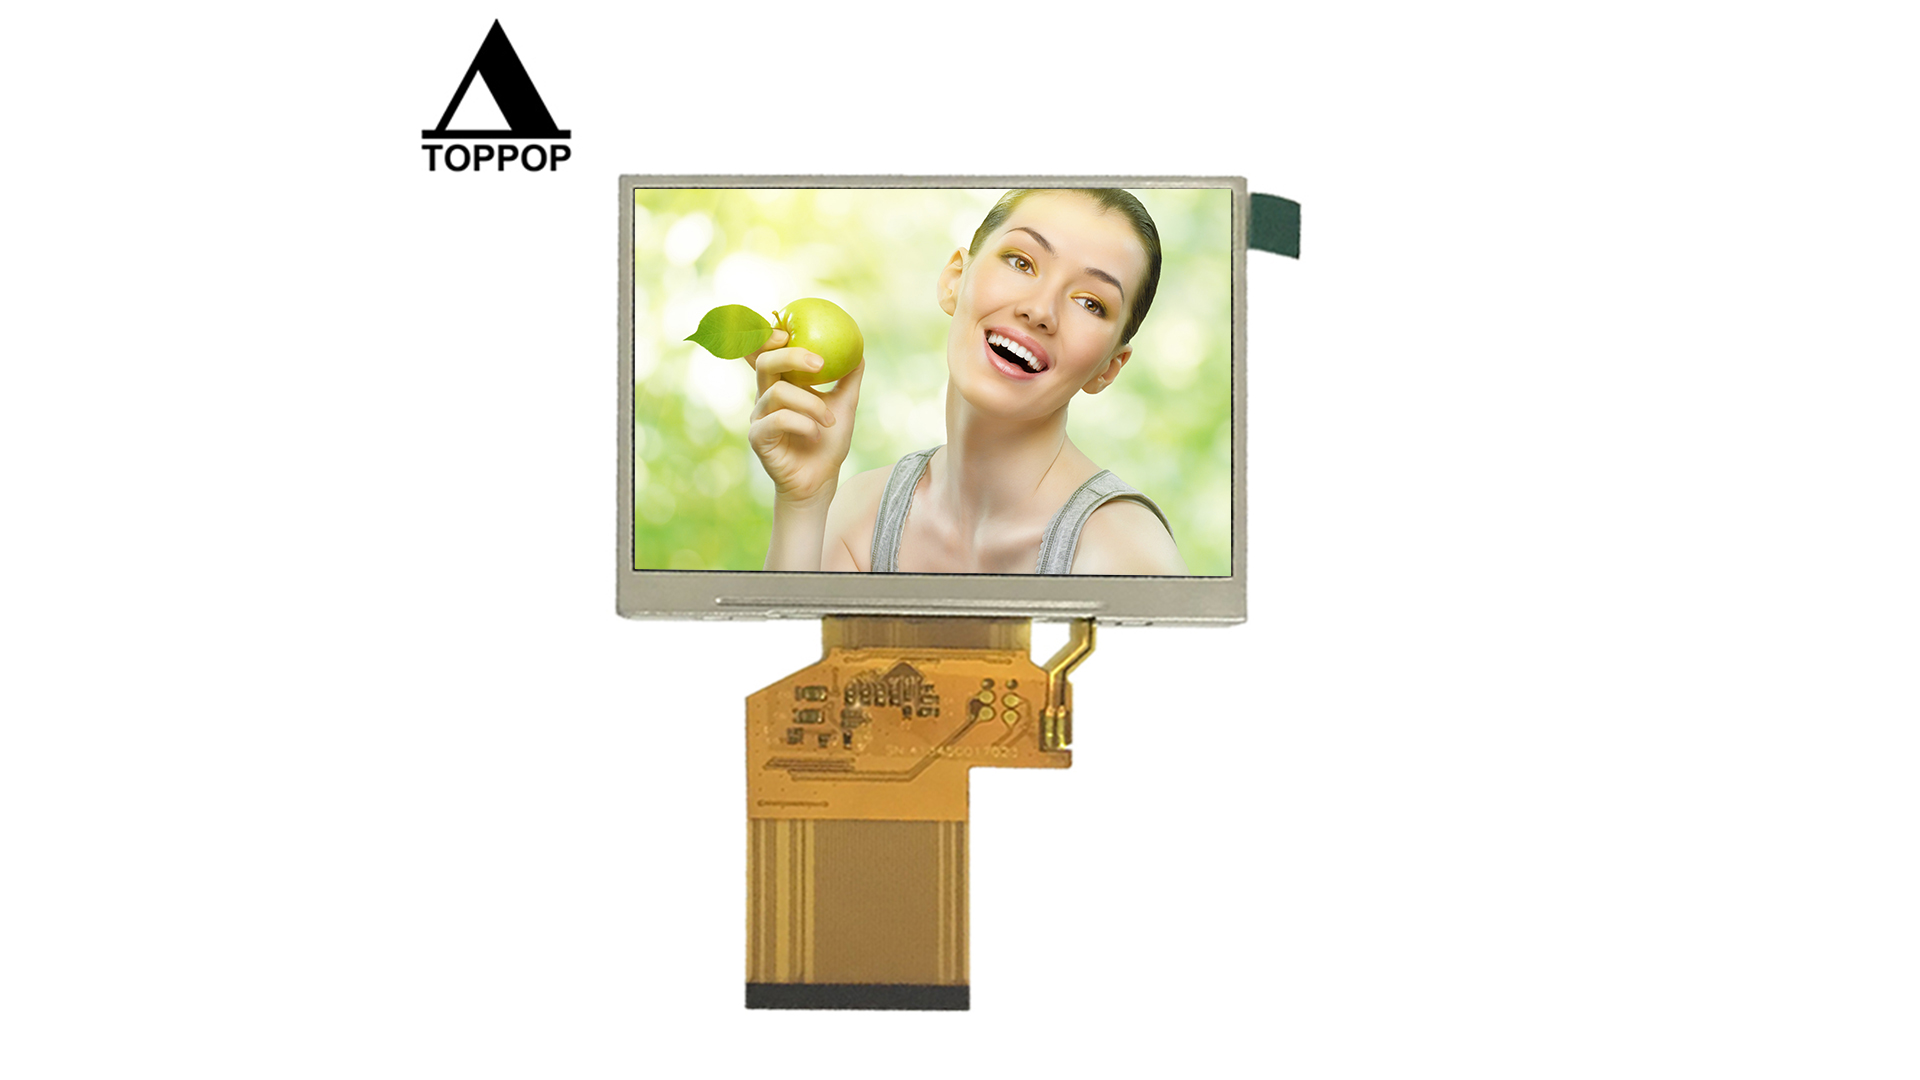 """3.5"""" Landscape 320*240 54 Pin flexible FPC 3.5 inch TFT Display Touch Panel Screen 3.5"""" Car LCD Module Digital Interface 250CD/m2 High Luminance for car lcd display toppoplcd"""